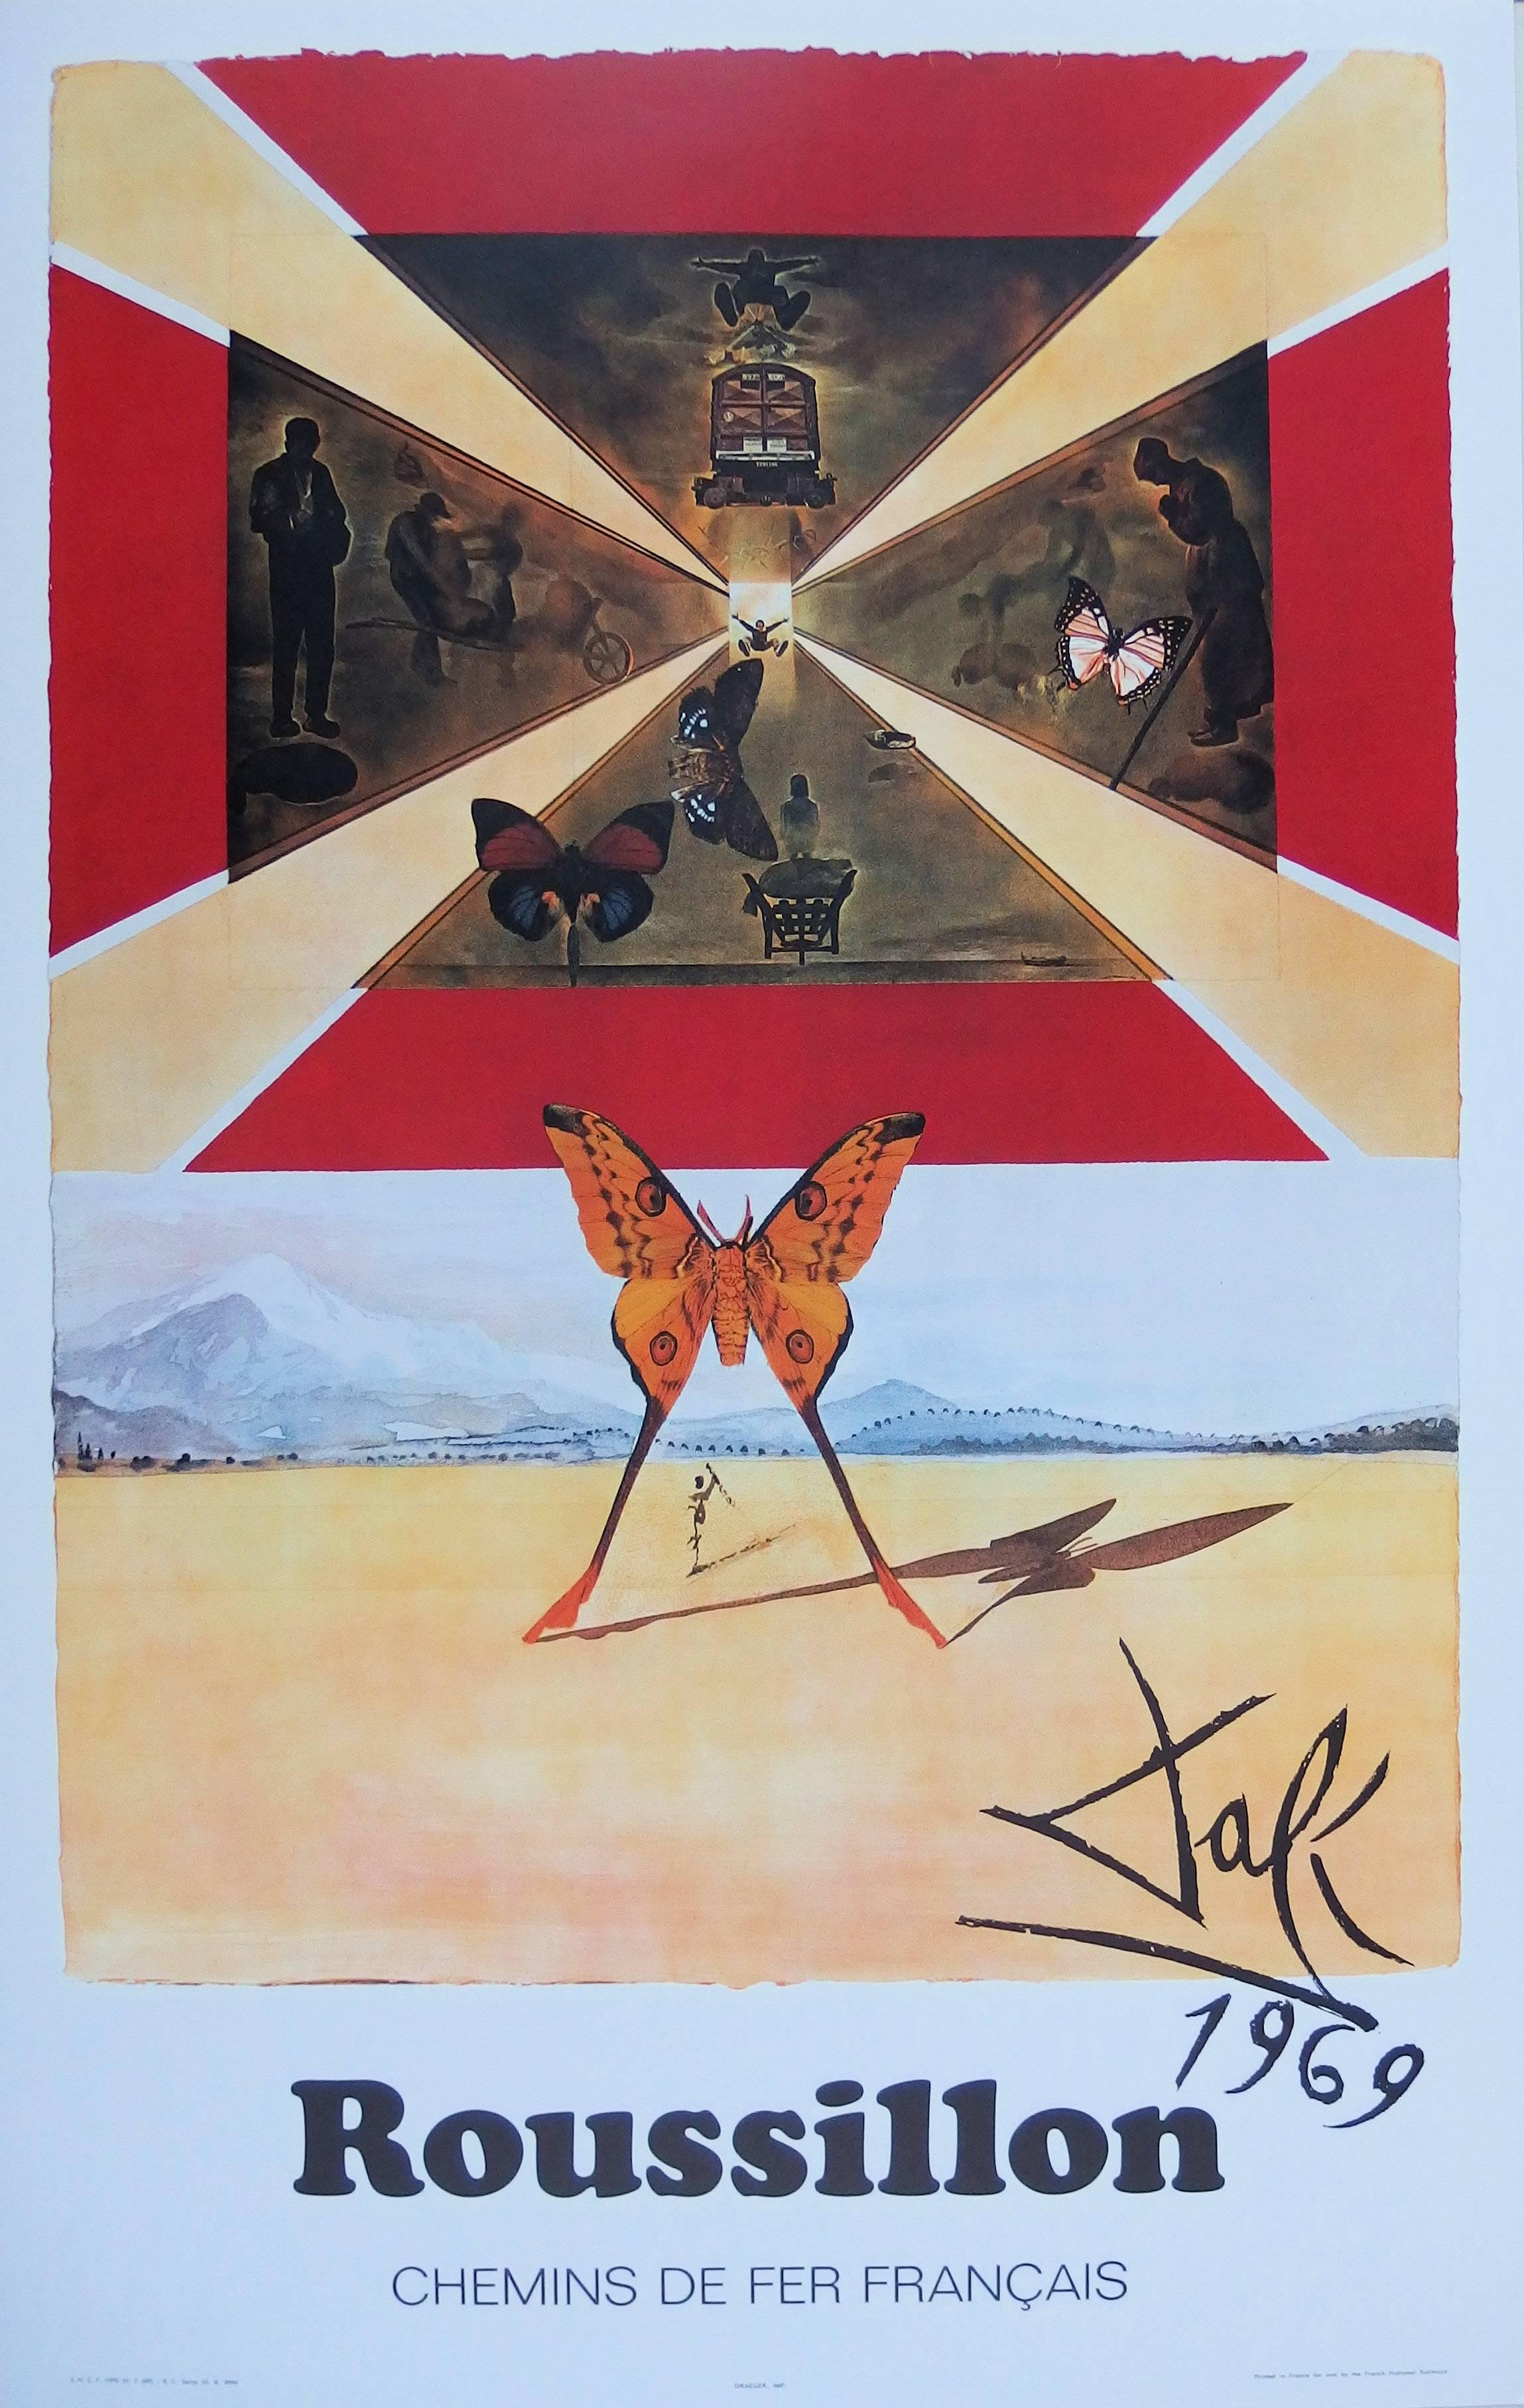 Butterfly suite : Roussillon - Original lithograph - Tall size, 1969